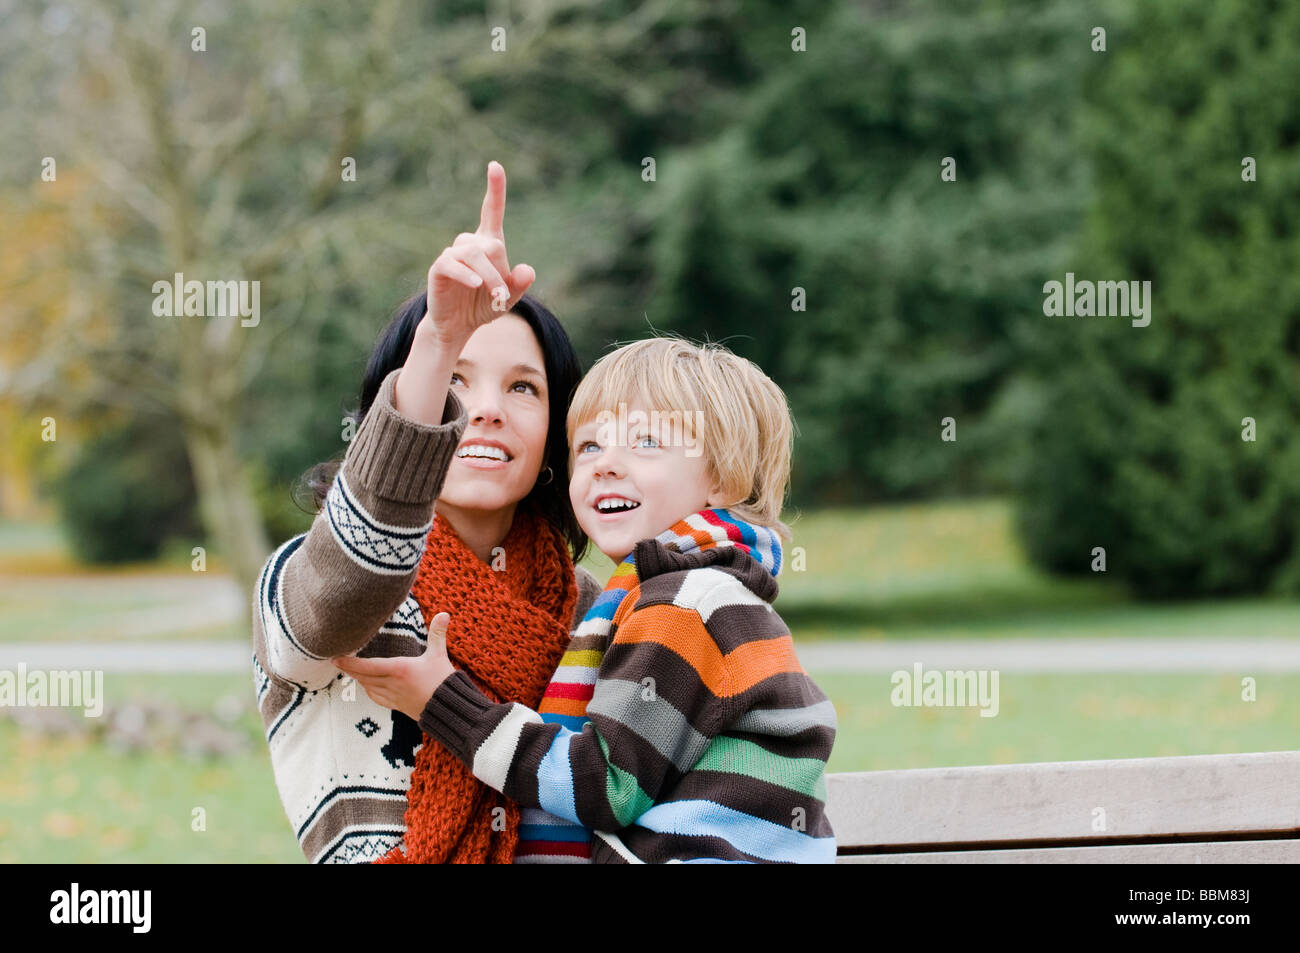 Young woman pointing, boy looking upward, Vancouver, British Columbia - Stock Image